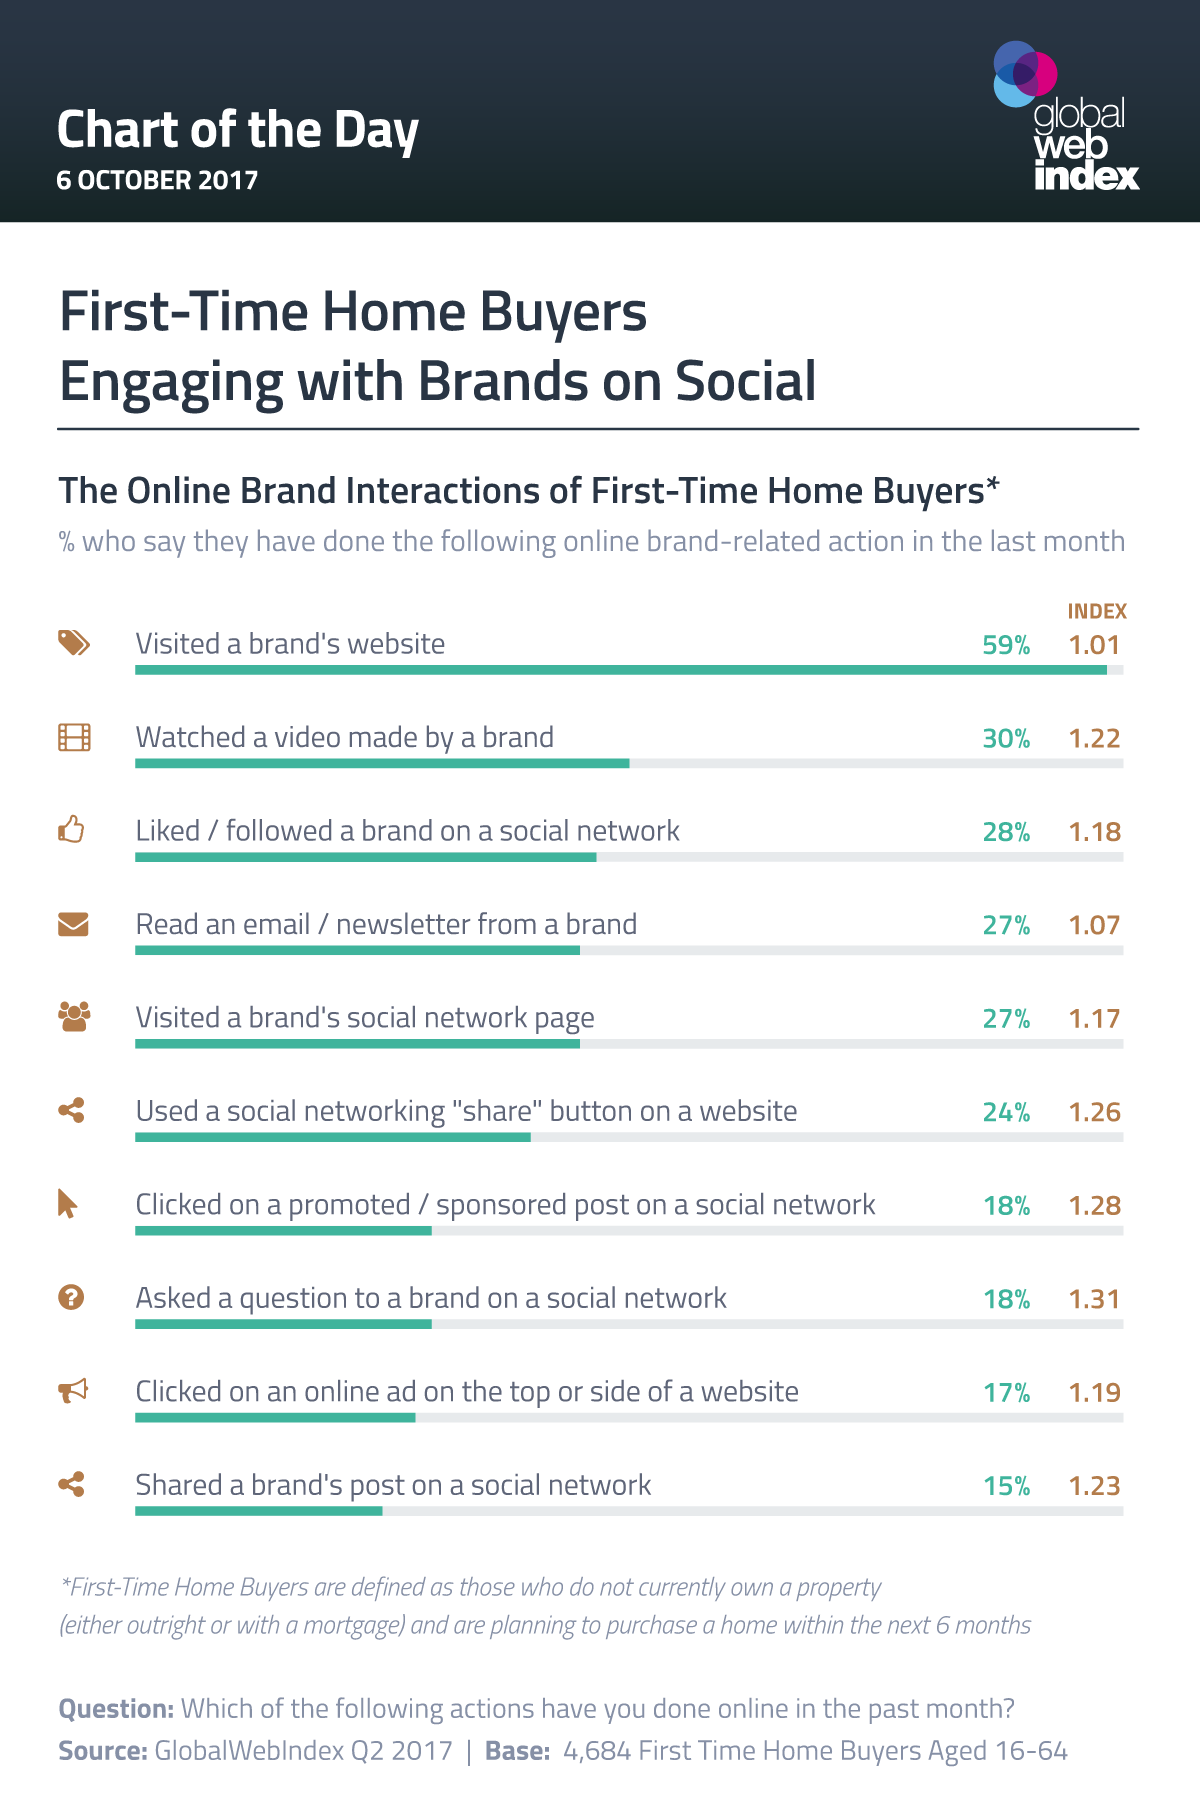 First-Time Home Buyers Engaging with Brands on Social